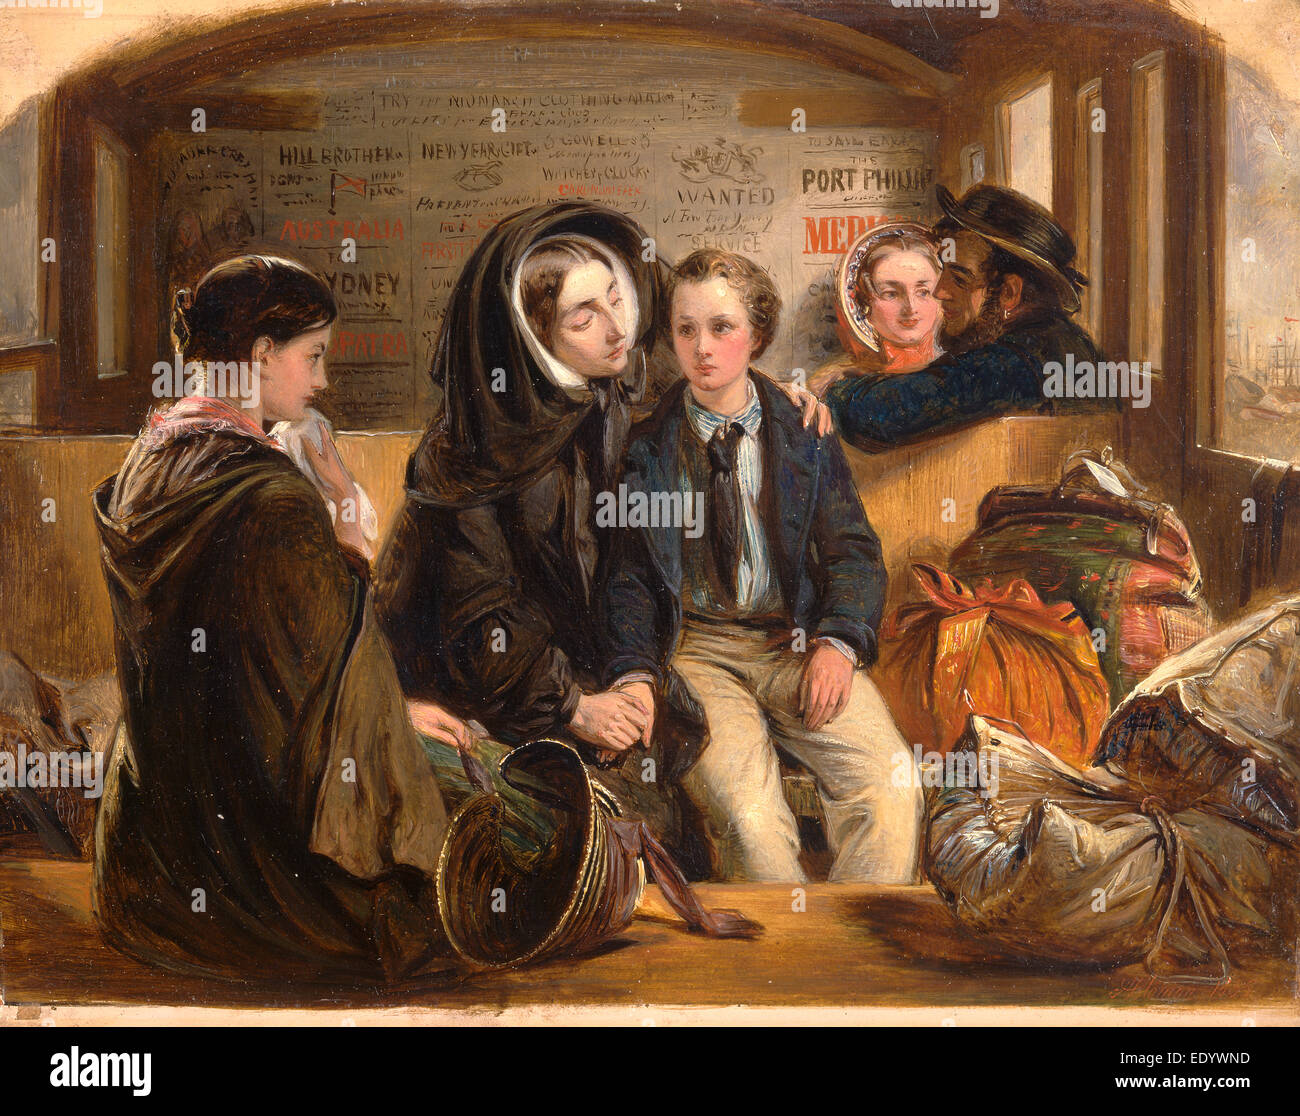 Second Class - The Parting. 'Thus part we rich in sorrow, parting poor.' Third Class - The Parting, Railway - Stock Image